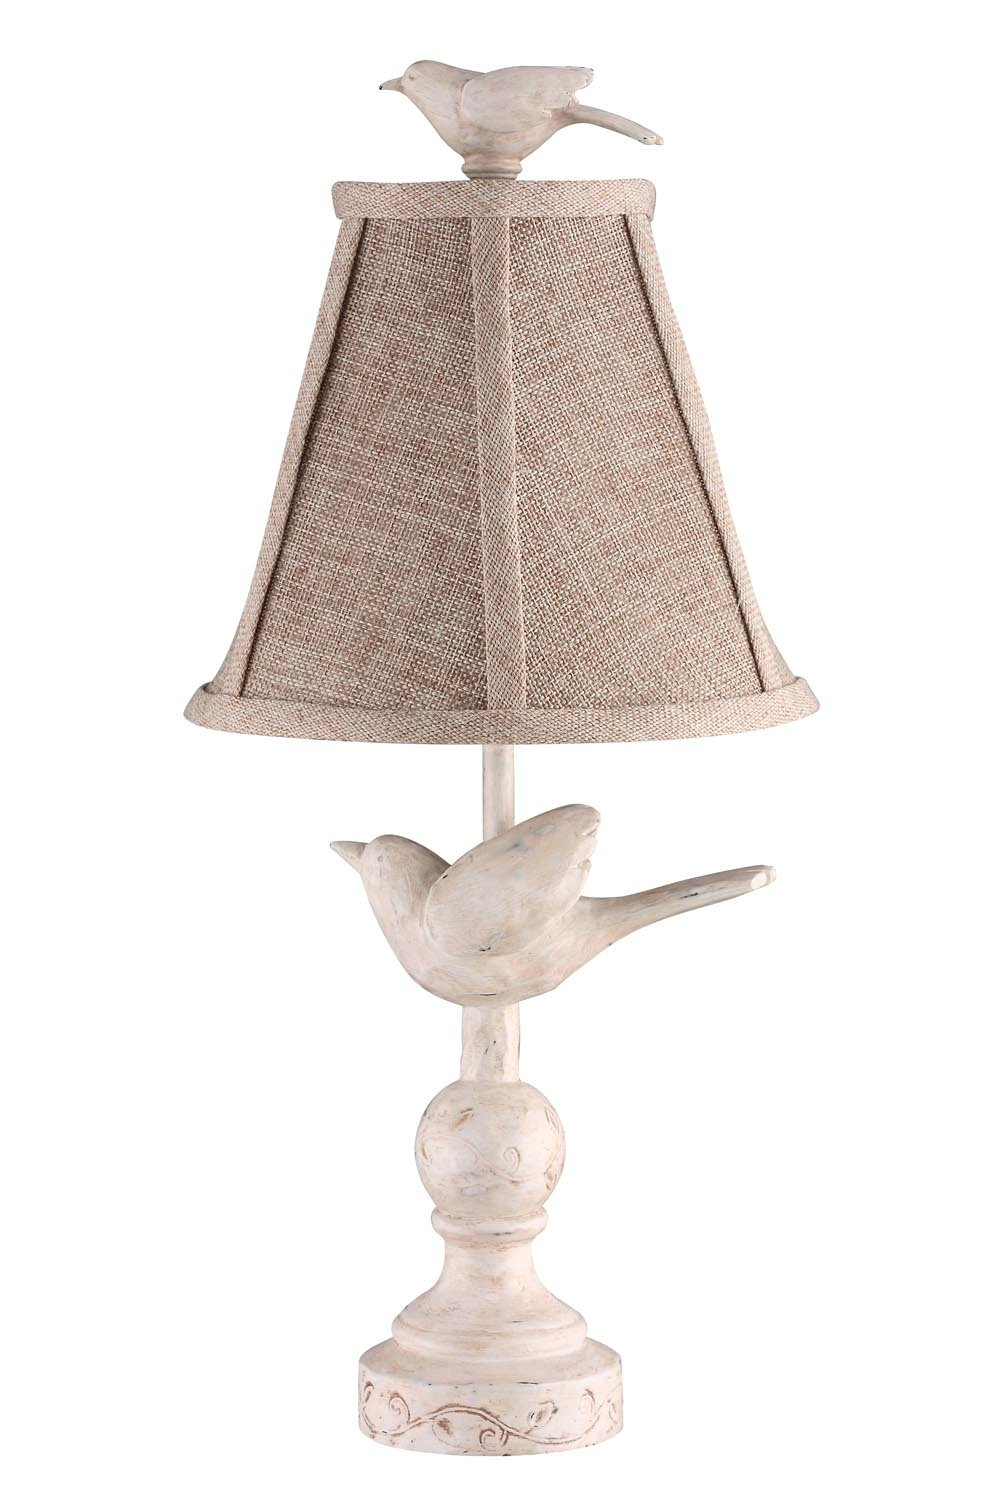 hand finish inch wildwood cfm high pom lighting shown painted item bird and silk n table porcelain lamp in shade capitol lamps